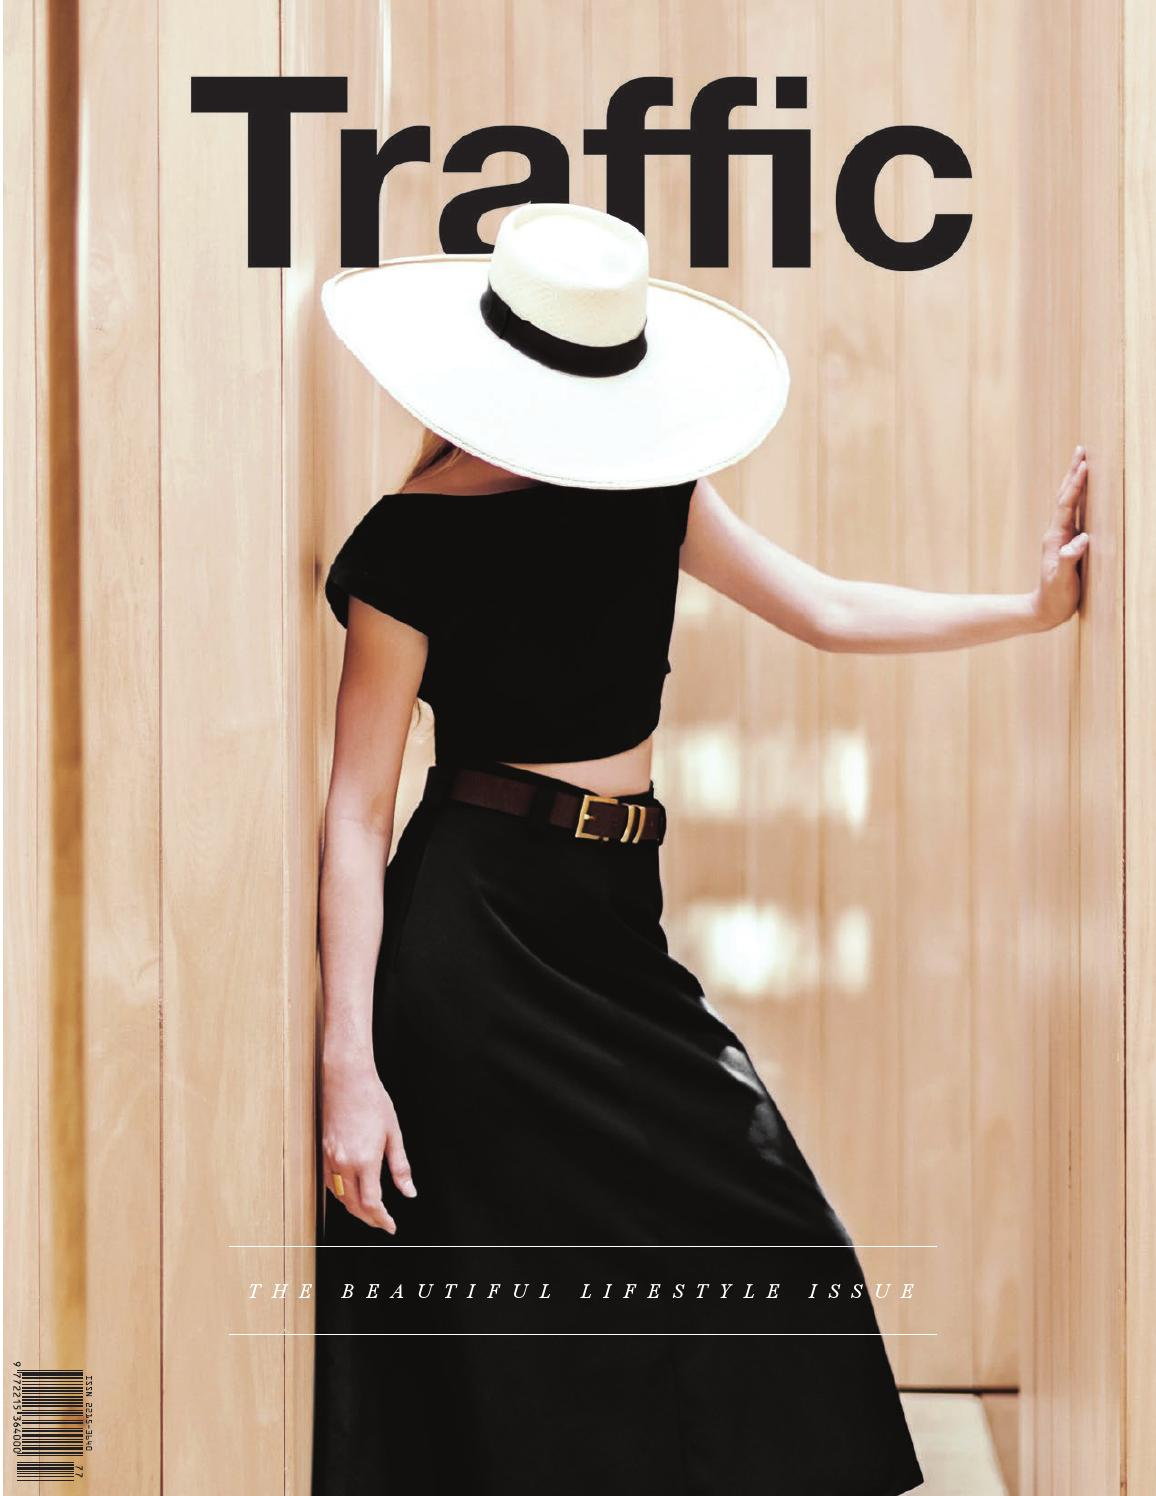 Traffic 17 The Beautiful Lifestyle Issue by Traffic Communications - issuu 62f3556371b16